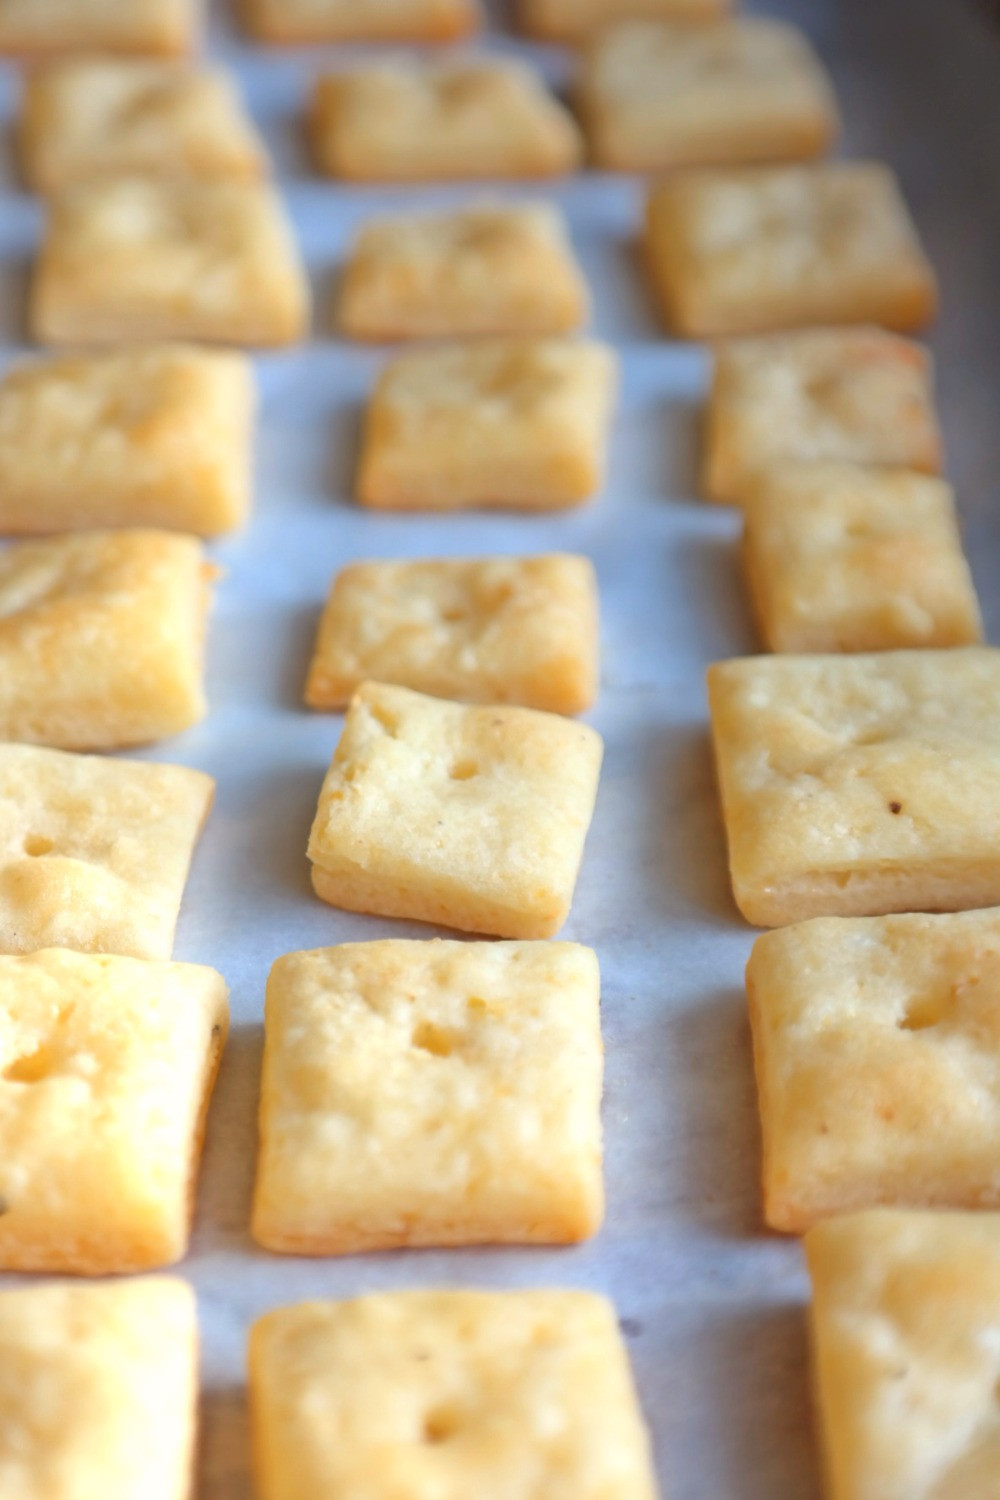 Roasted Garlic & White Cheddar Oak Cheezits | eatlovegarlic.com @eatlovegarlic